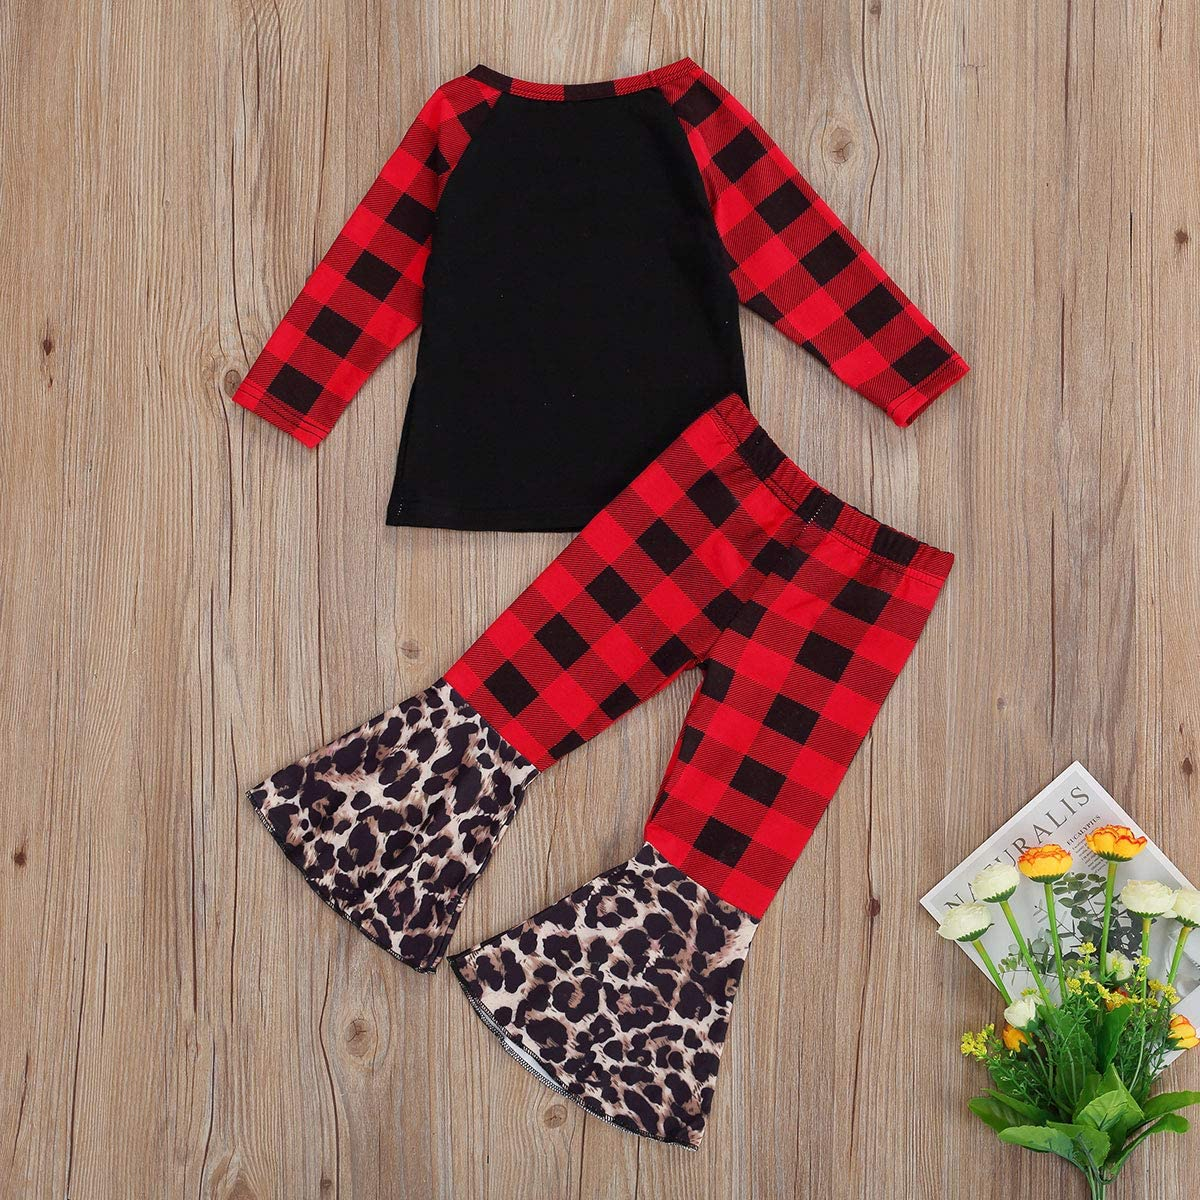 Winter Holiday Boho Flare Stretch Cotton Christmas Outfit 12-18 Months 2T 3T 4T 5 6 7 8 Toddler Girls Reindeer Red Stripe Tie Twirl Dress